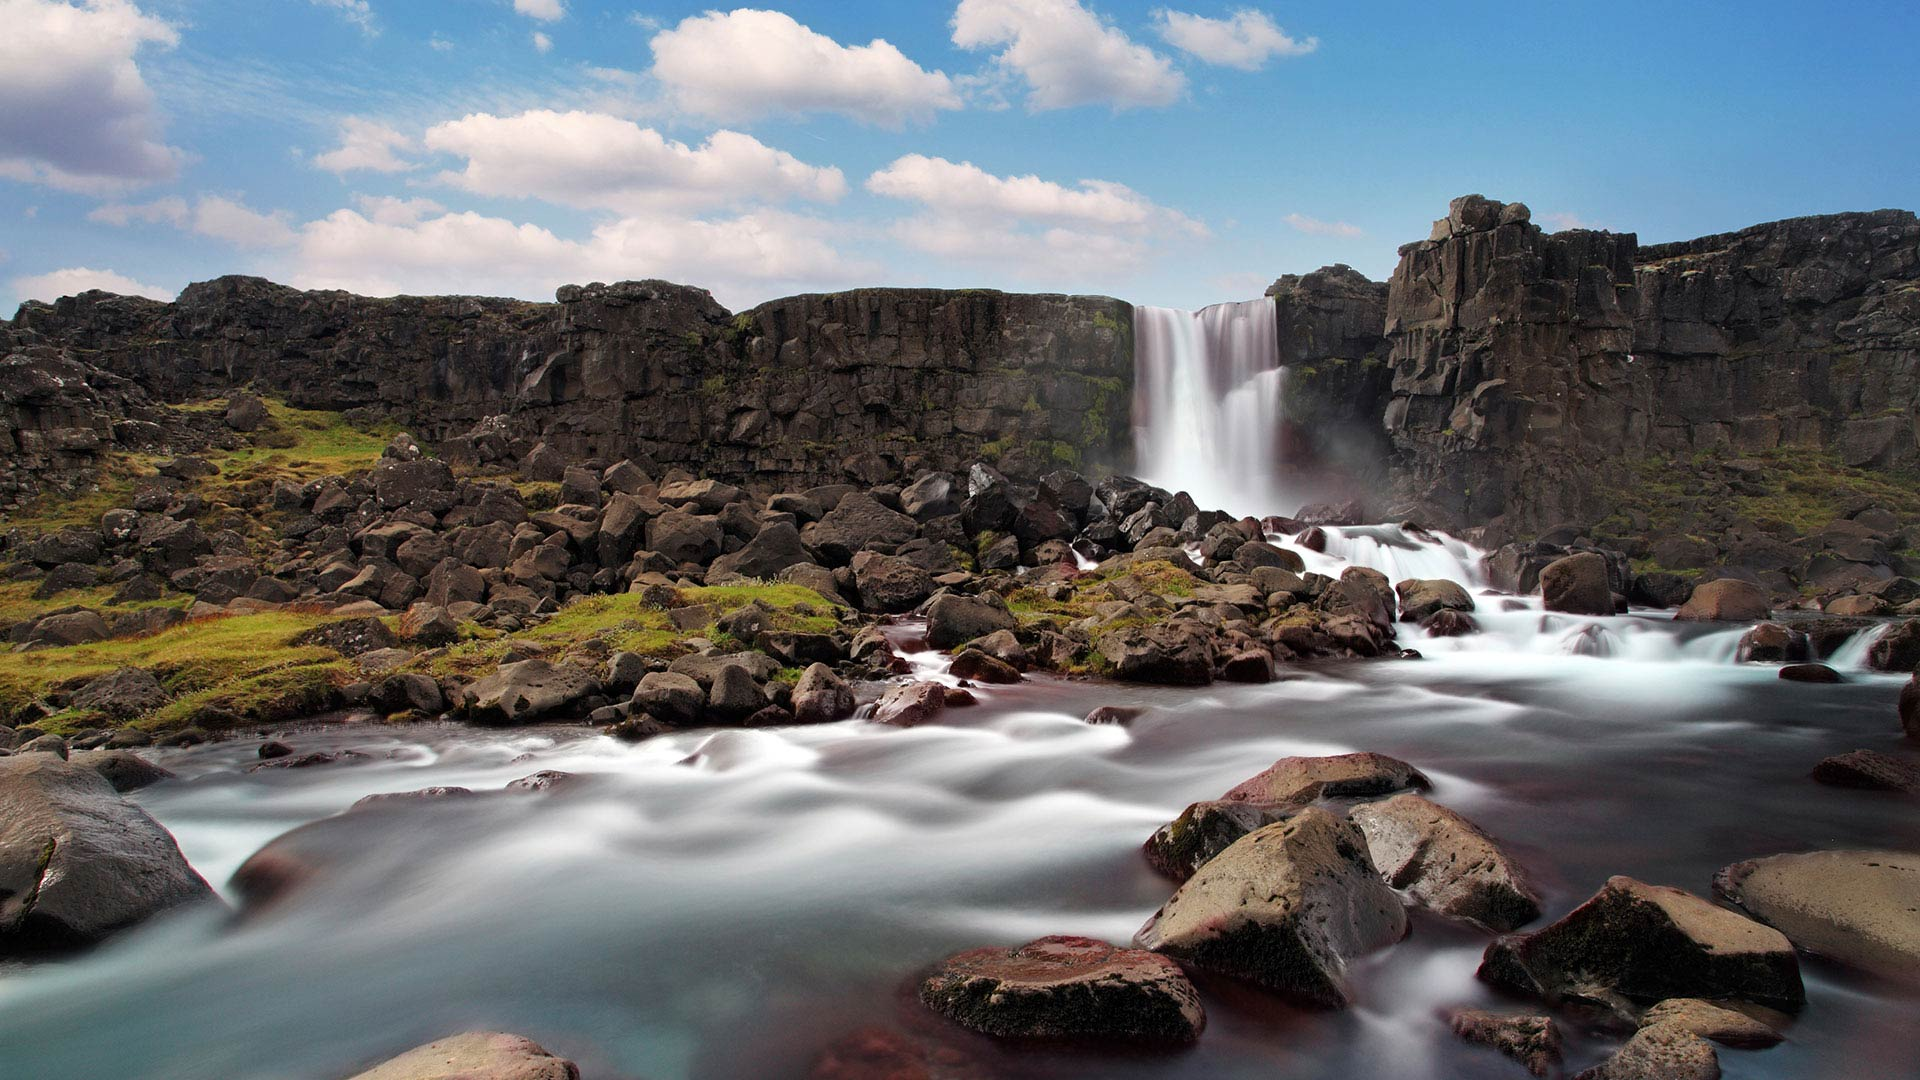 Rosnarfoss Waterfall in Þingvellir